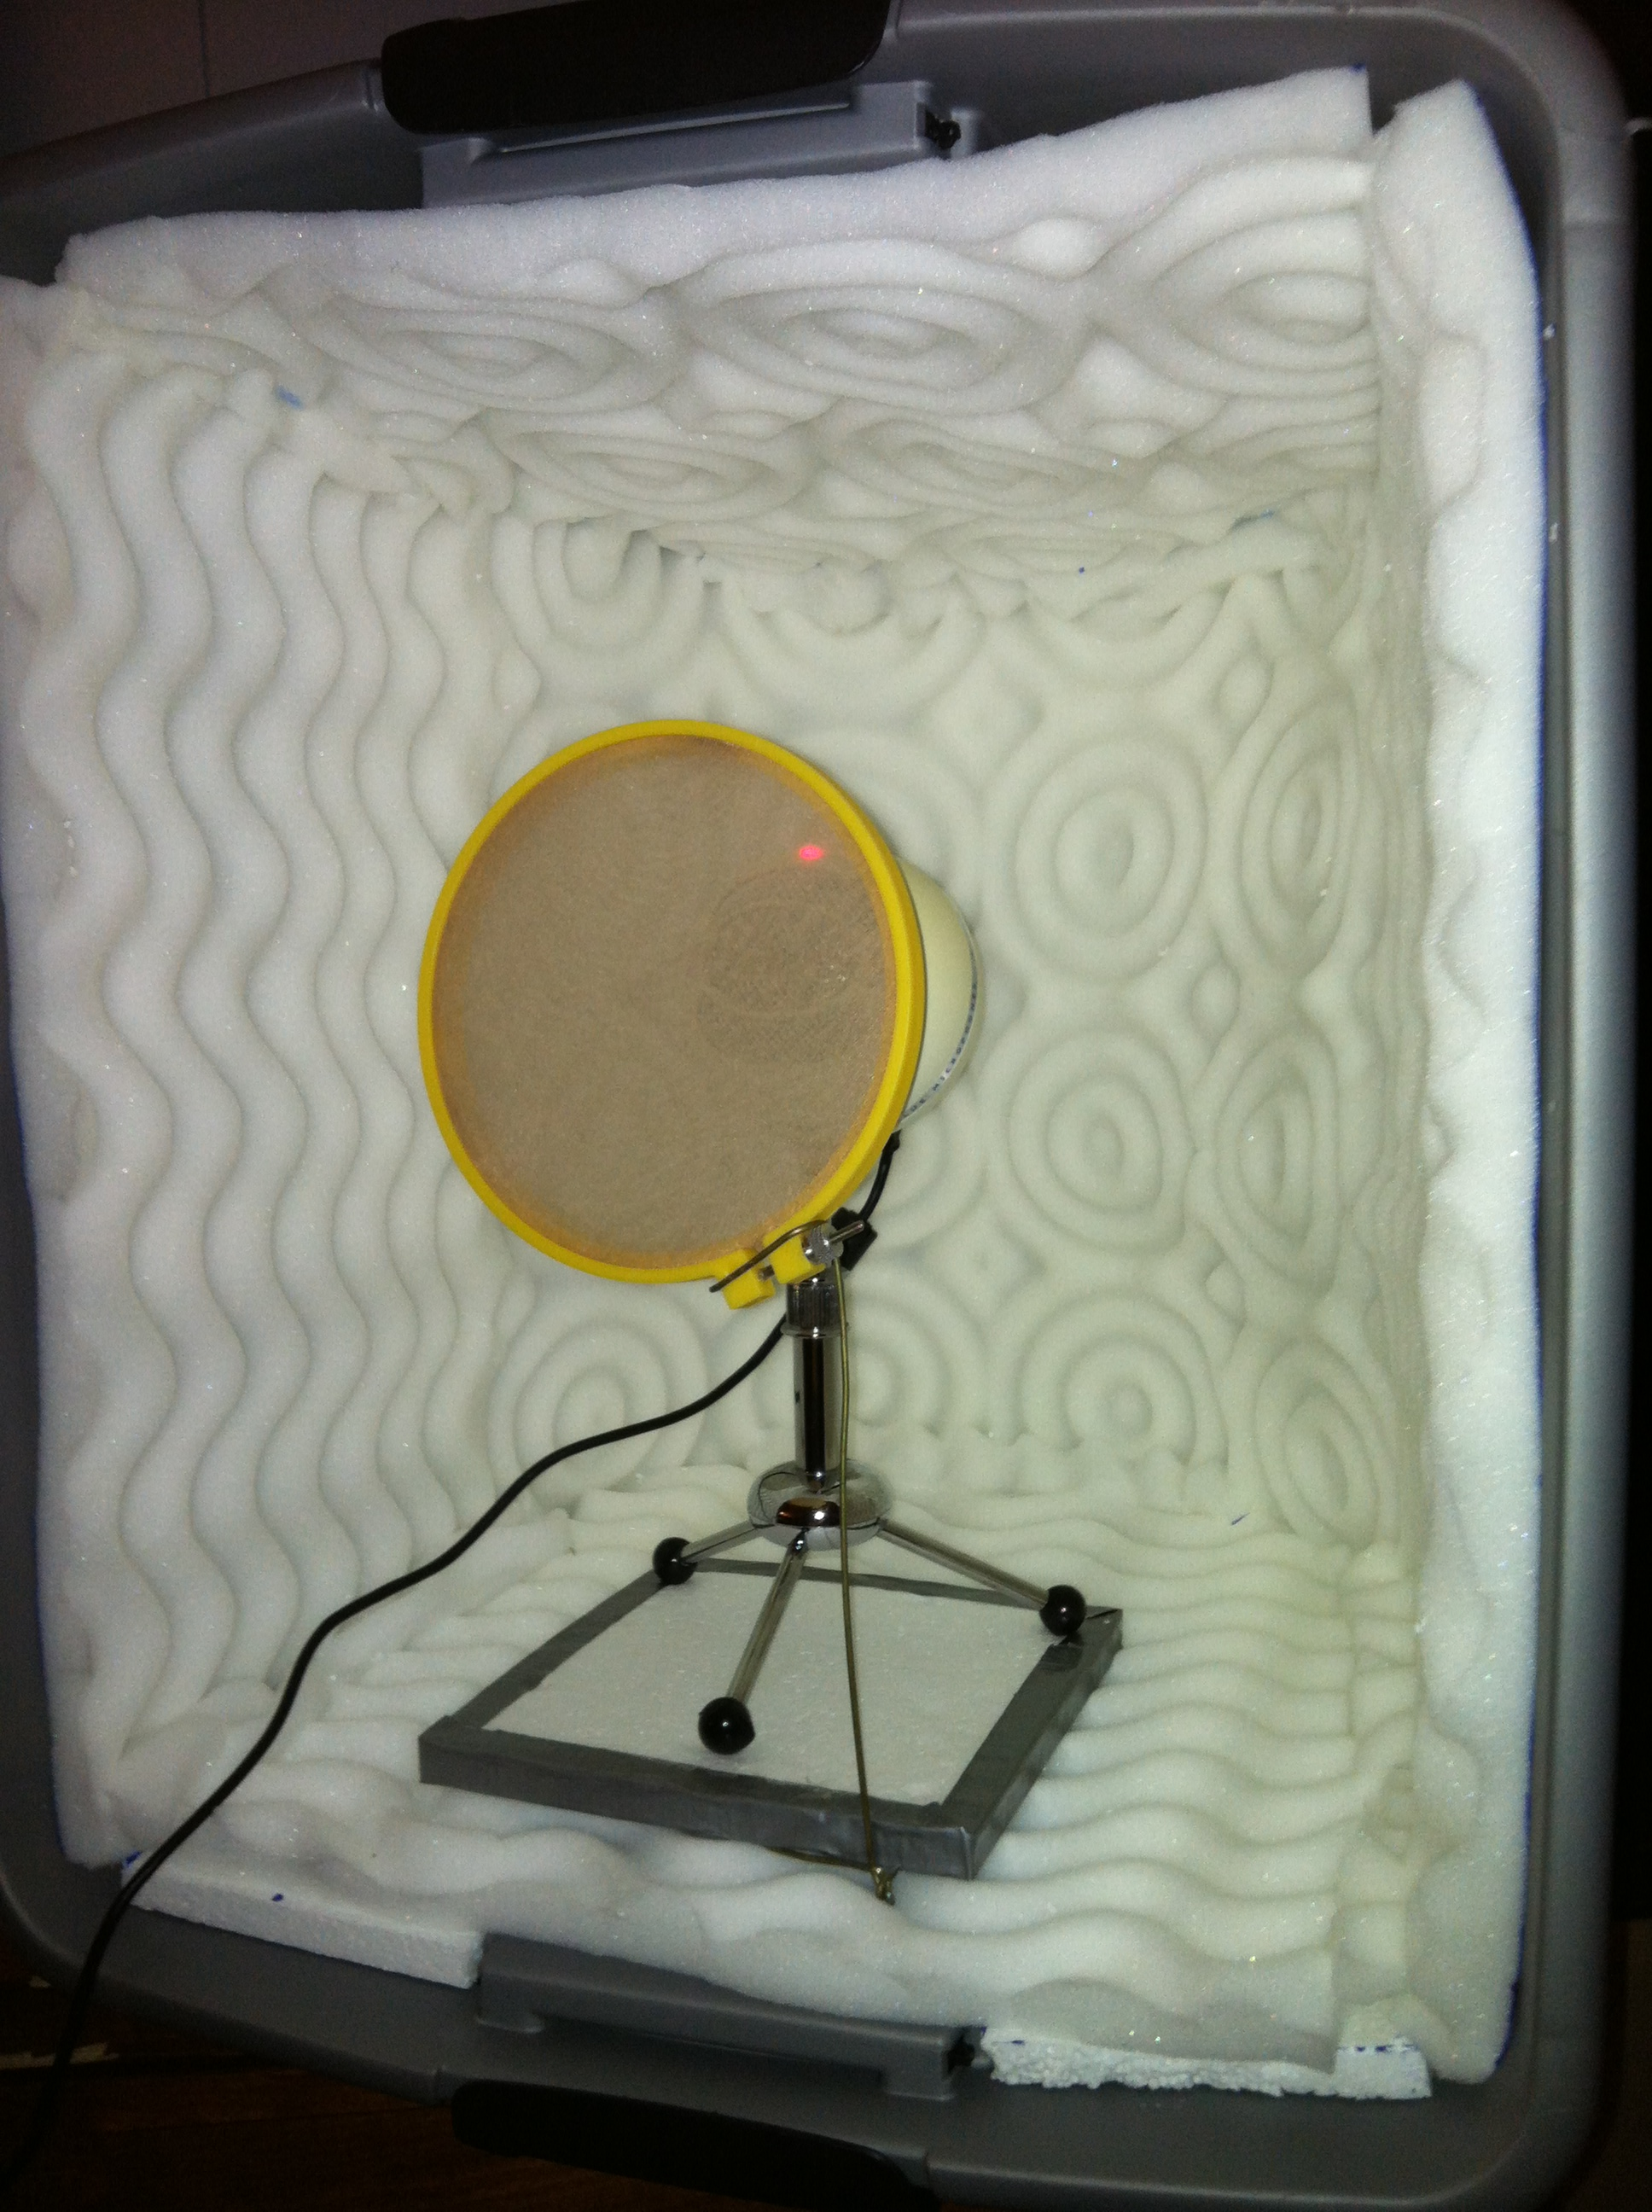 Foam Mattress Topper Target Make a desktop sound booth for $25 | NspireD2: Learning Technology in ...